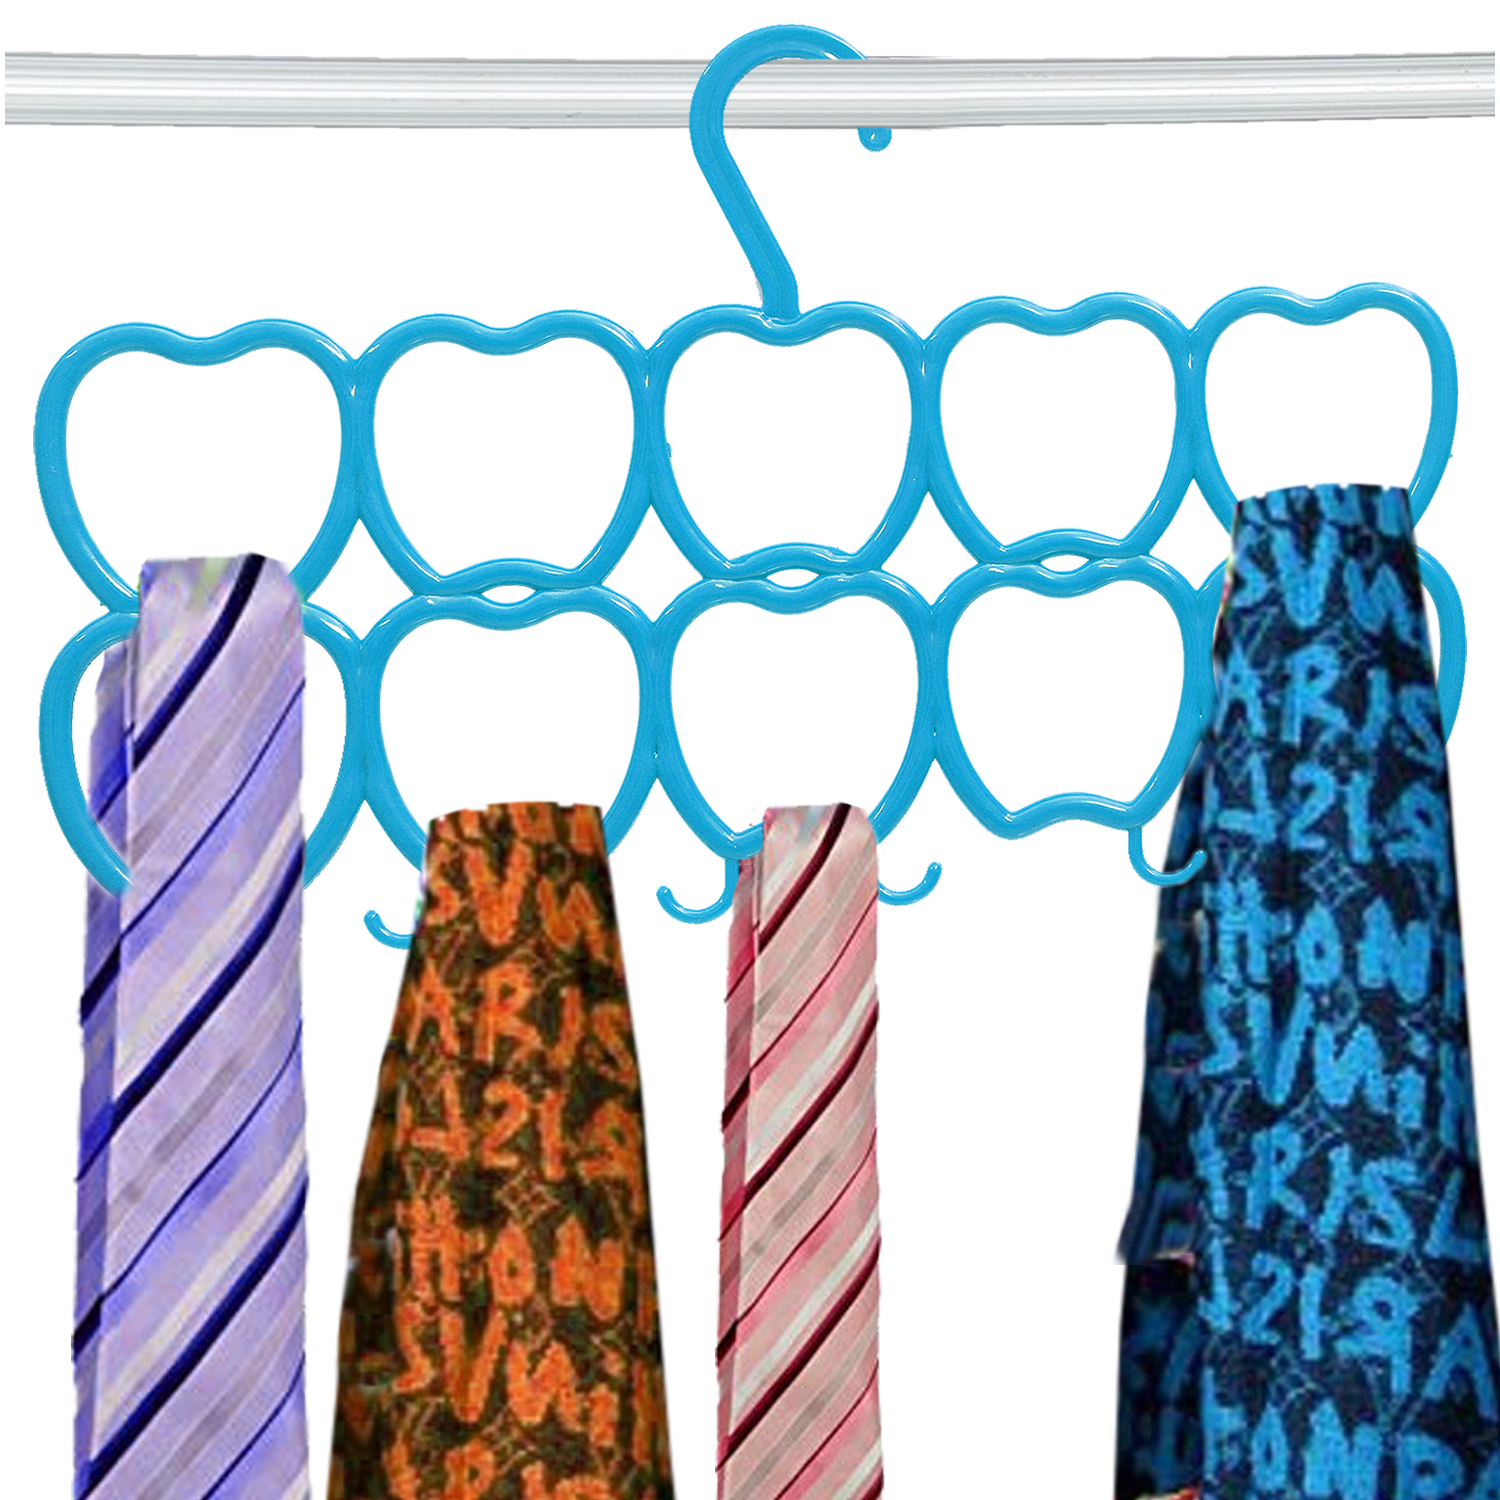 Kuber Industries 10-Circle 4 Pieces Plastic Heart Design Hanger for Scarf, Shawl, Tie, Belt, Closet Accessory Wardrobe Organizer (MultiColor) - CTKTC30780